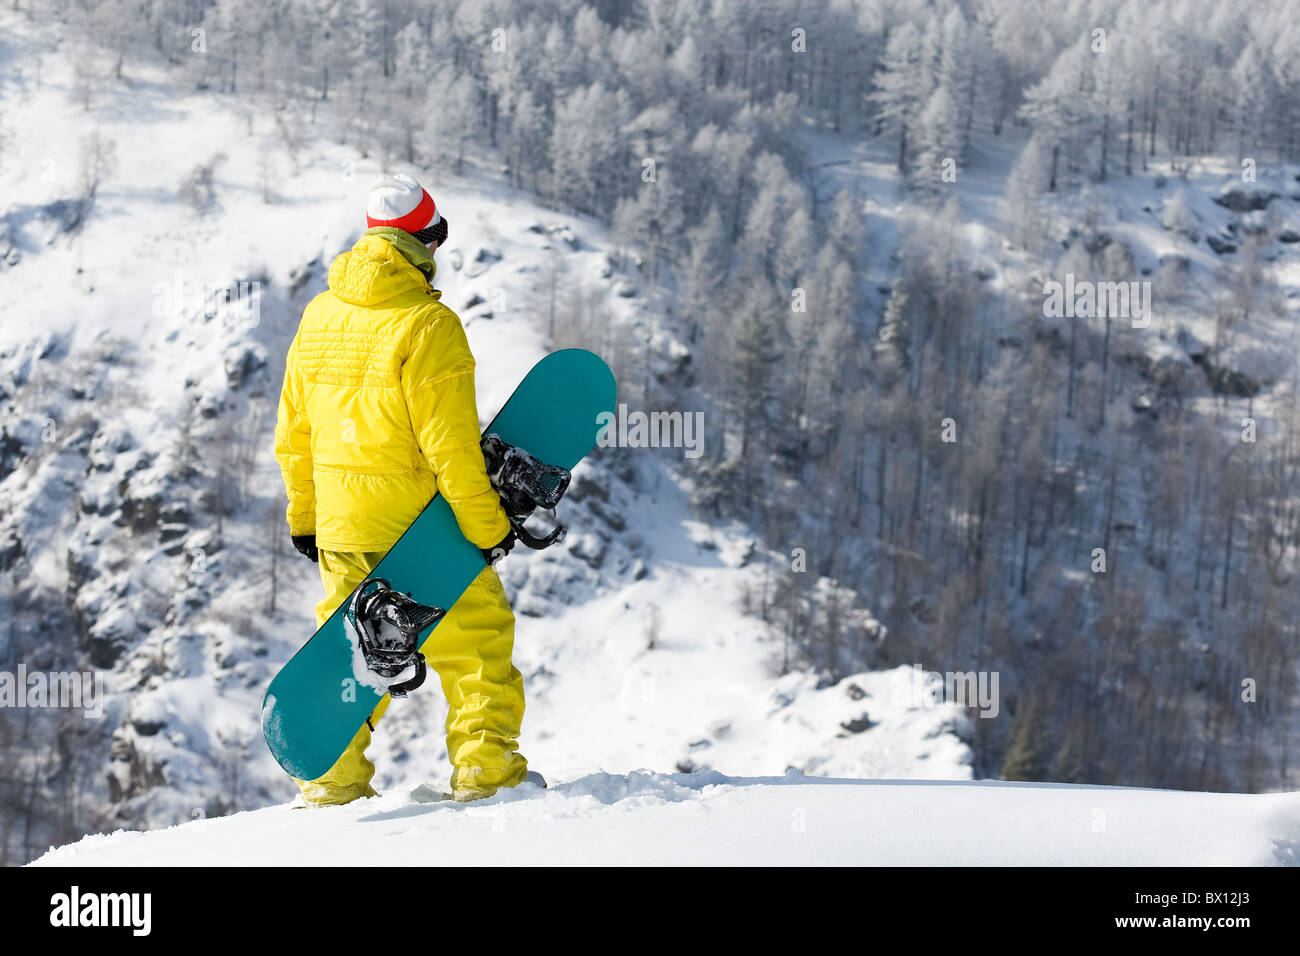 Rear view of snowboarder standing in snowdrift in winter - Stock Image